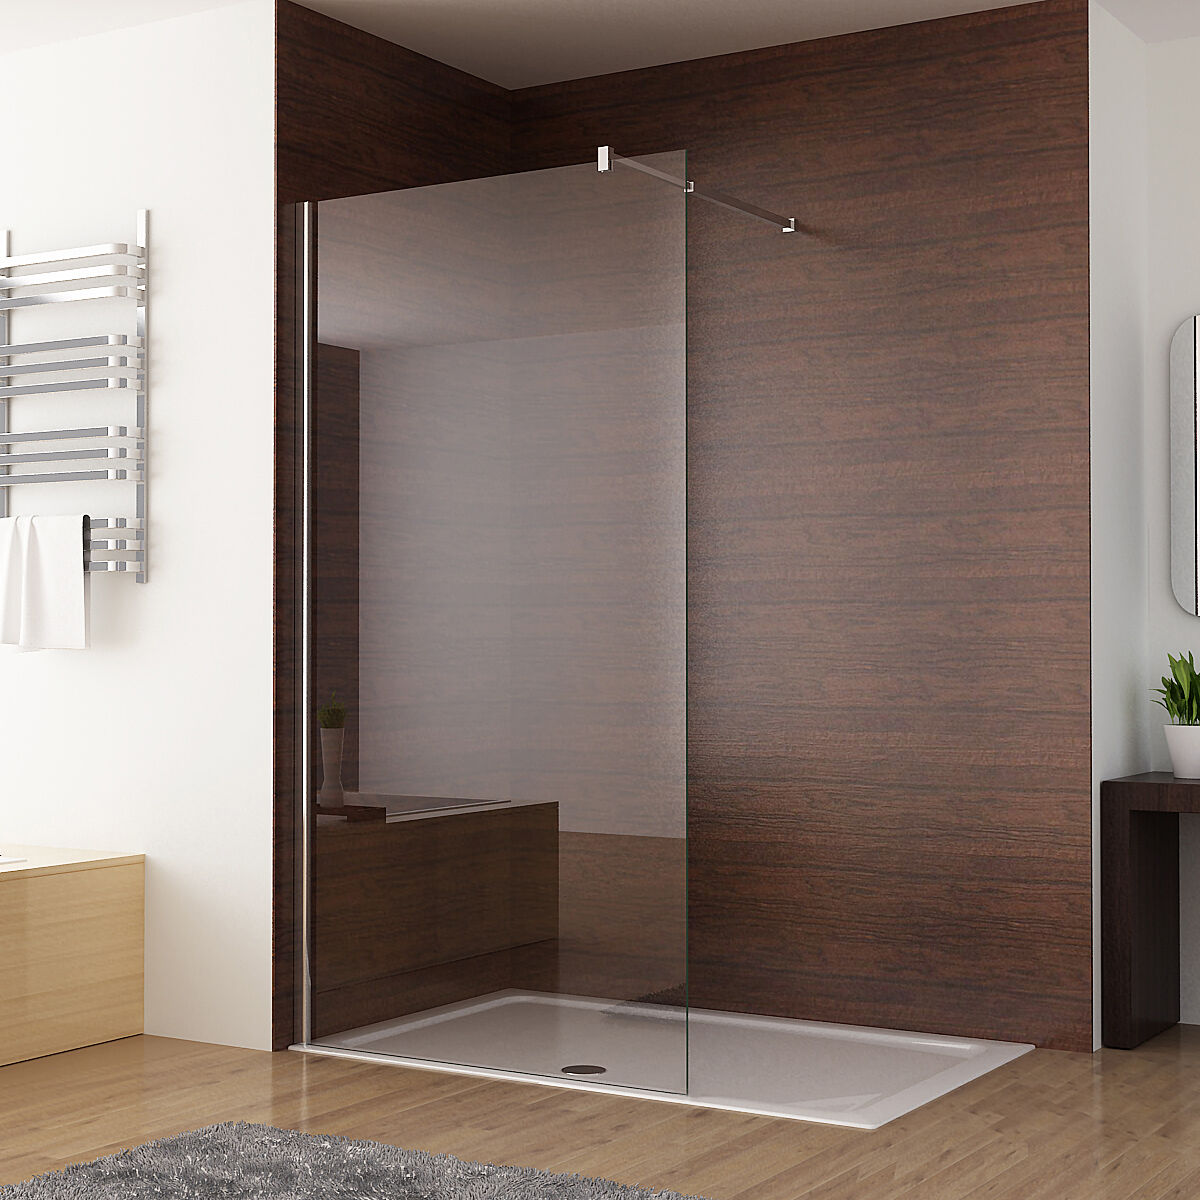 duschabtrennung walk in duschwand seitenwand dusche duschtrennwand 70 120x200cm ebay. Black Bedroom Furniture Sets. Home Design Ideas